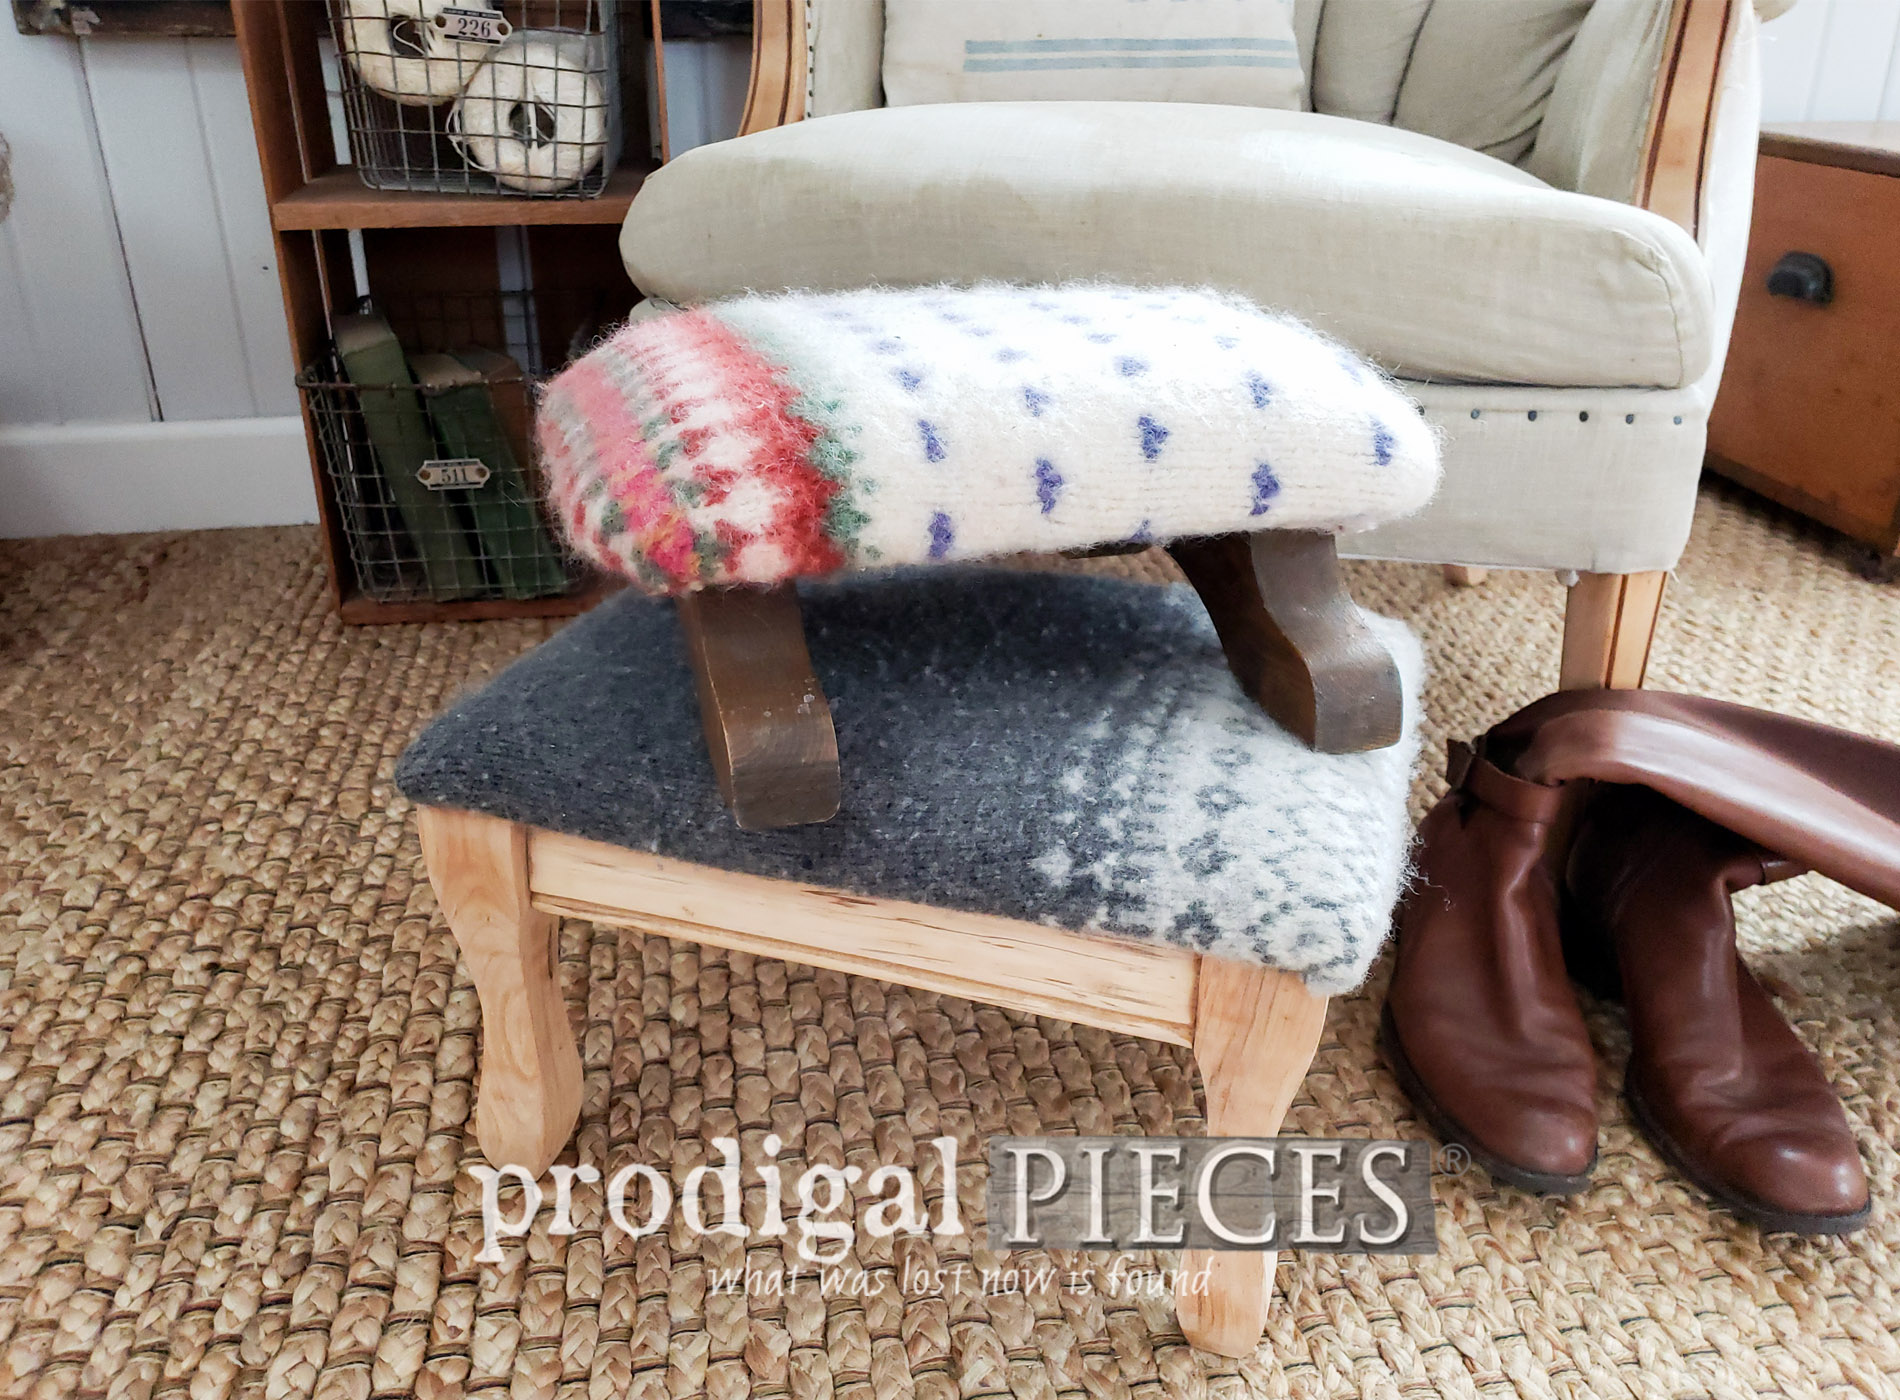 Featured Felted Wool Footstools Upholstered with Thrifted Sweaters | DIY video tutorial by Larissa of Prodigal Pieces | prodigalpieces.com #prodigalpieces #handmade #vintage #farmhouse #furniture #home #homedecor #homedecorideas